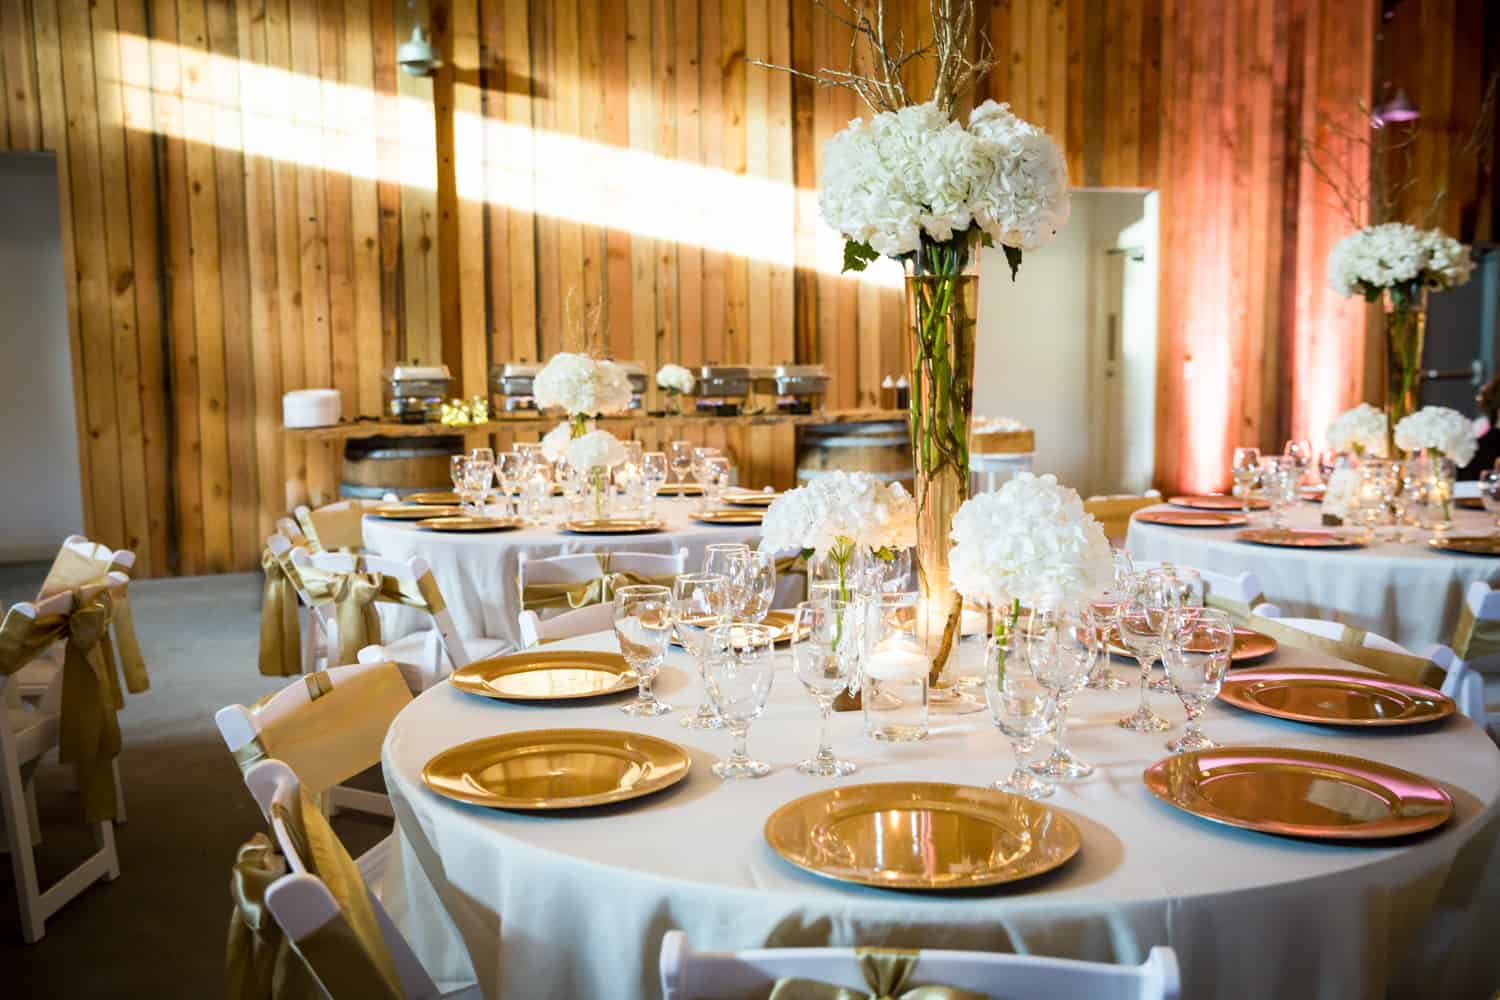 Place setting with gold chargers for an article on wedding cost cutting tips